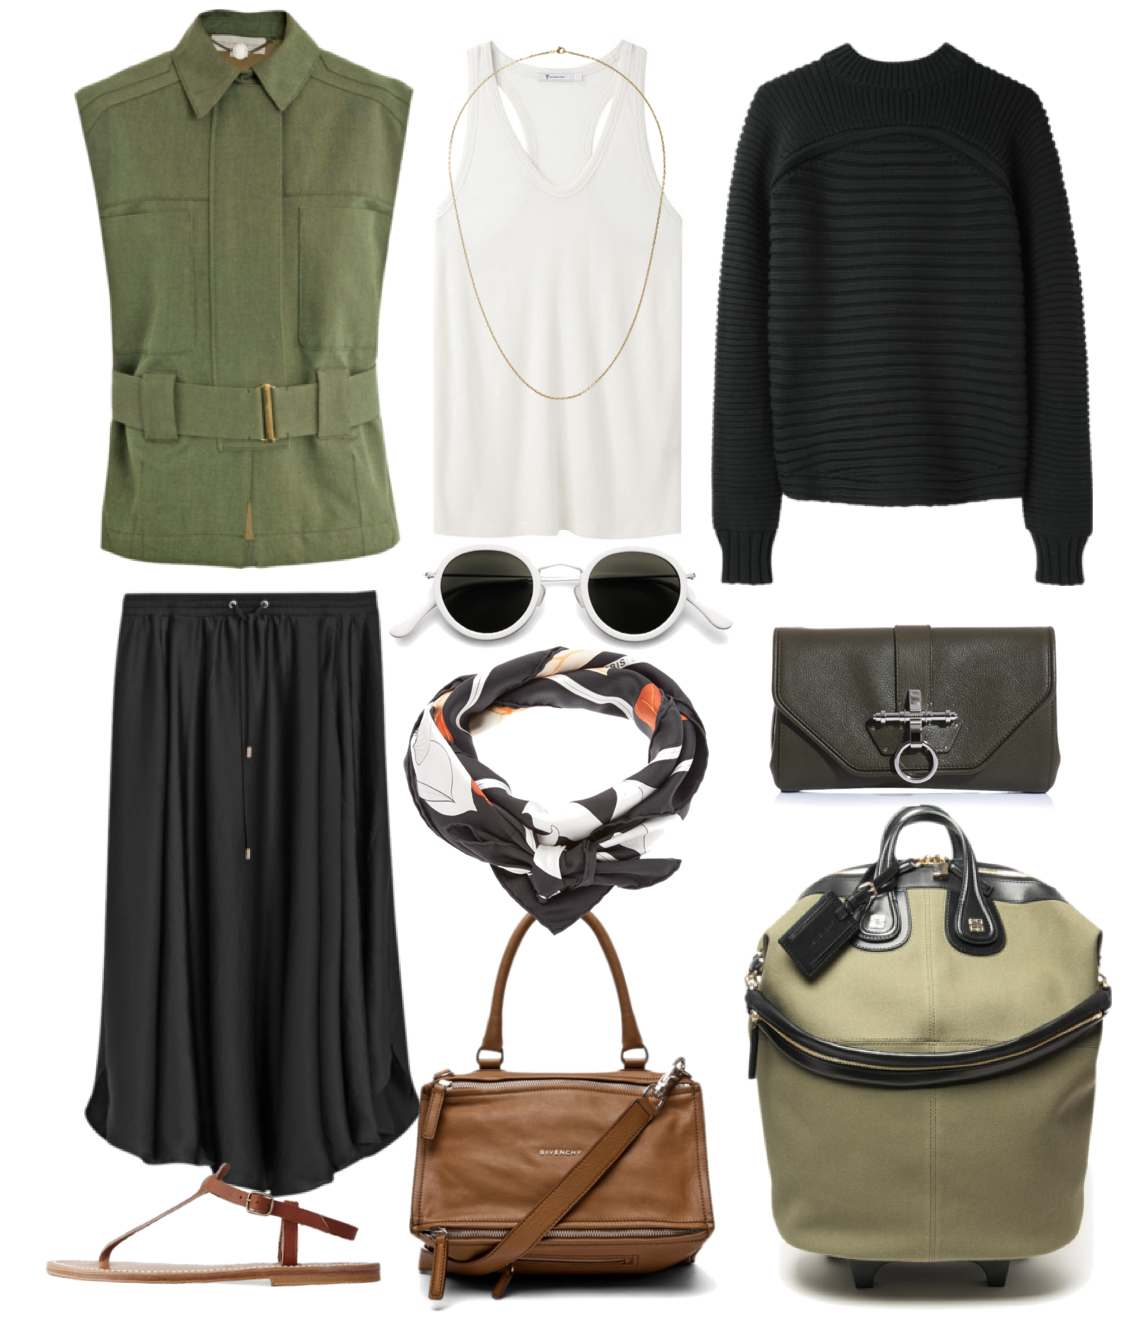 Safari chic - Stella McCartney vest, Alexander Wang tops, Filippa K skirt, Givenchy bags, Acne sunglasses and Hermes scarf, K Jacques sandals & Repossi necklace